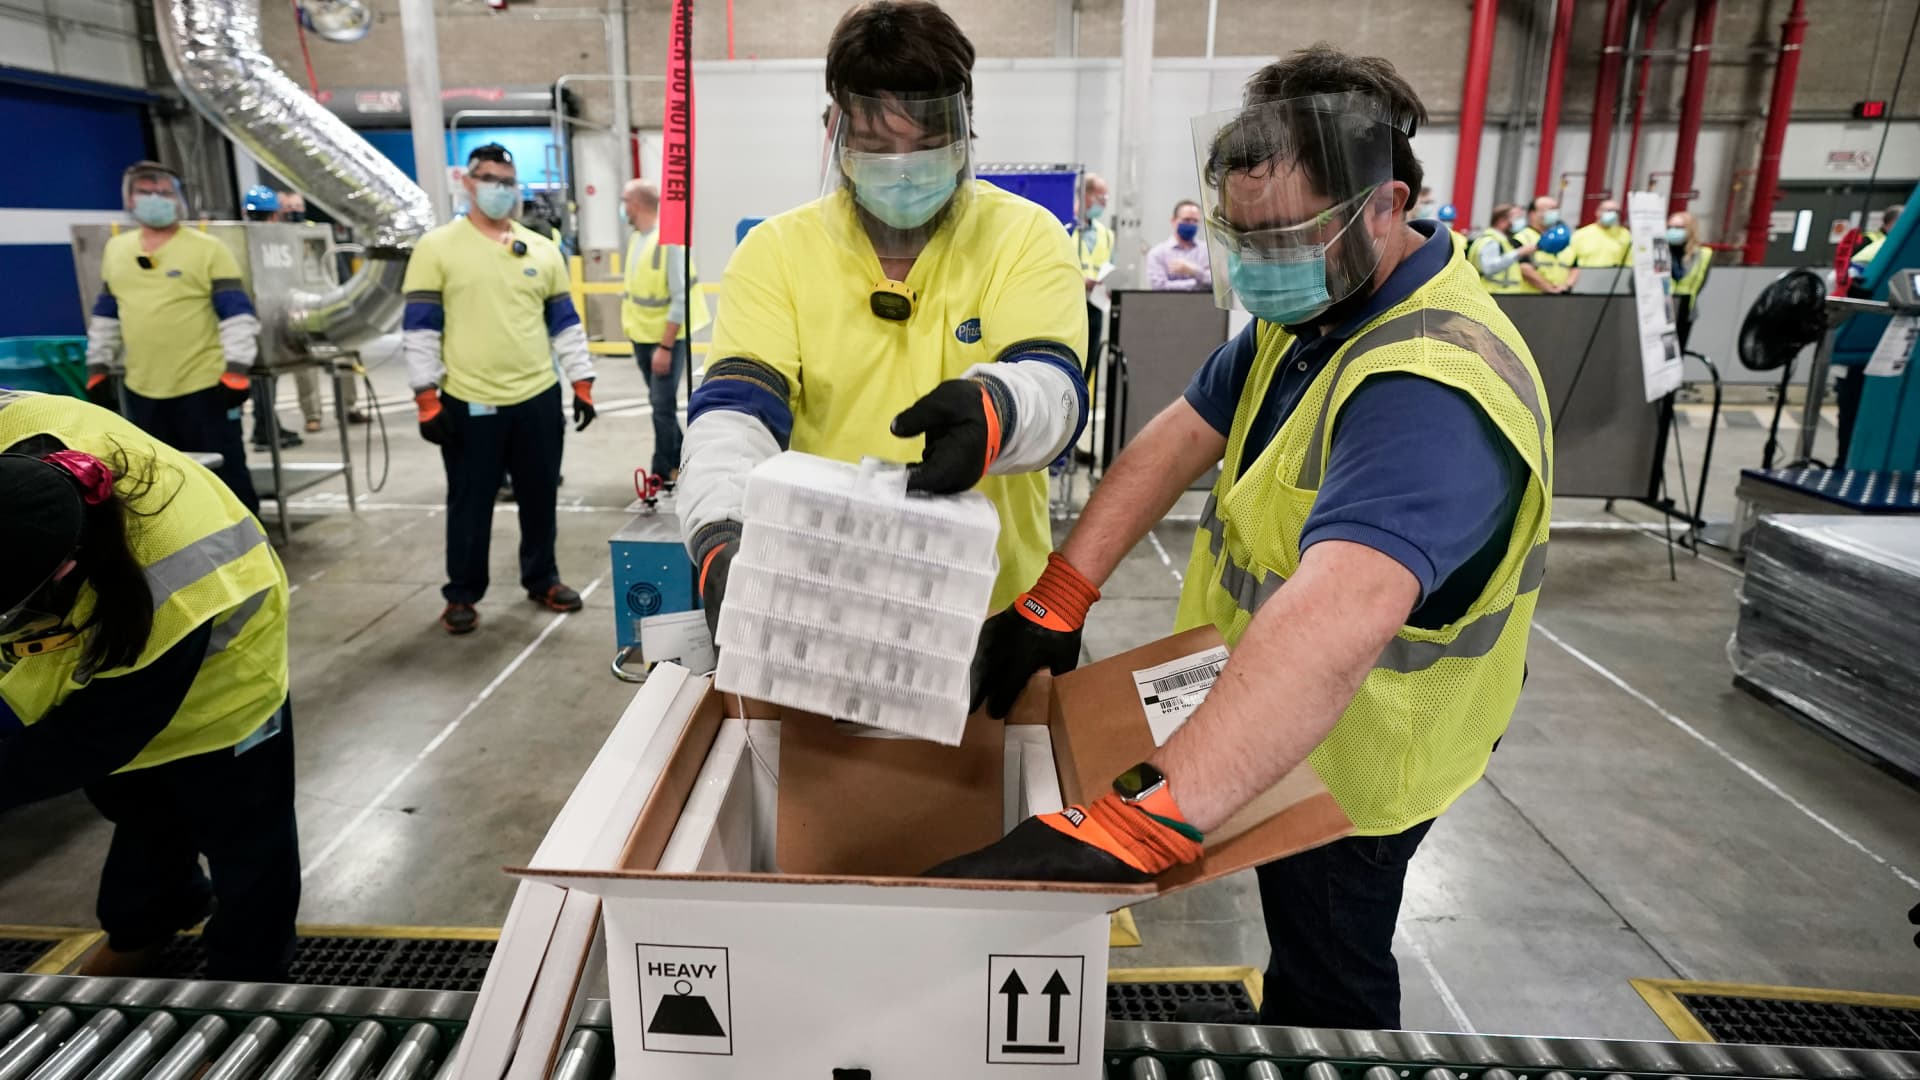 Boxes containing the Pfizer-BioNTech Covid vaccine are prepared to be shipped at the Pfizer Global Supply Kalamazoo manufacturing plant on December 13, 2020 in Portage, Michigan.